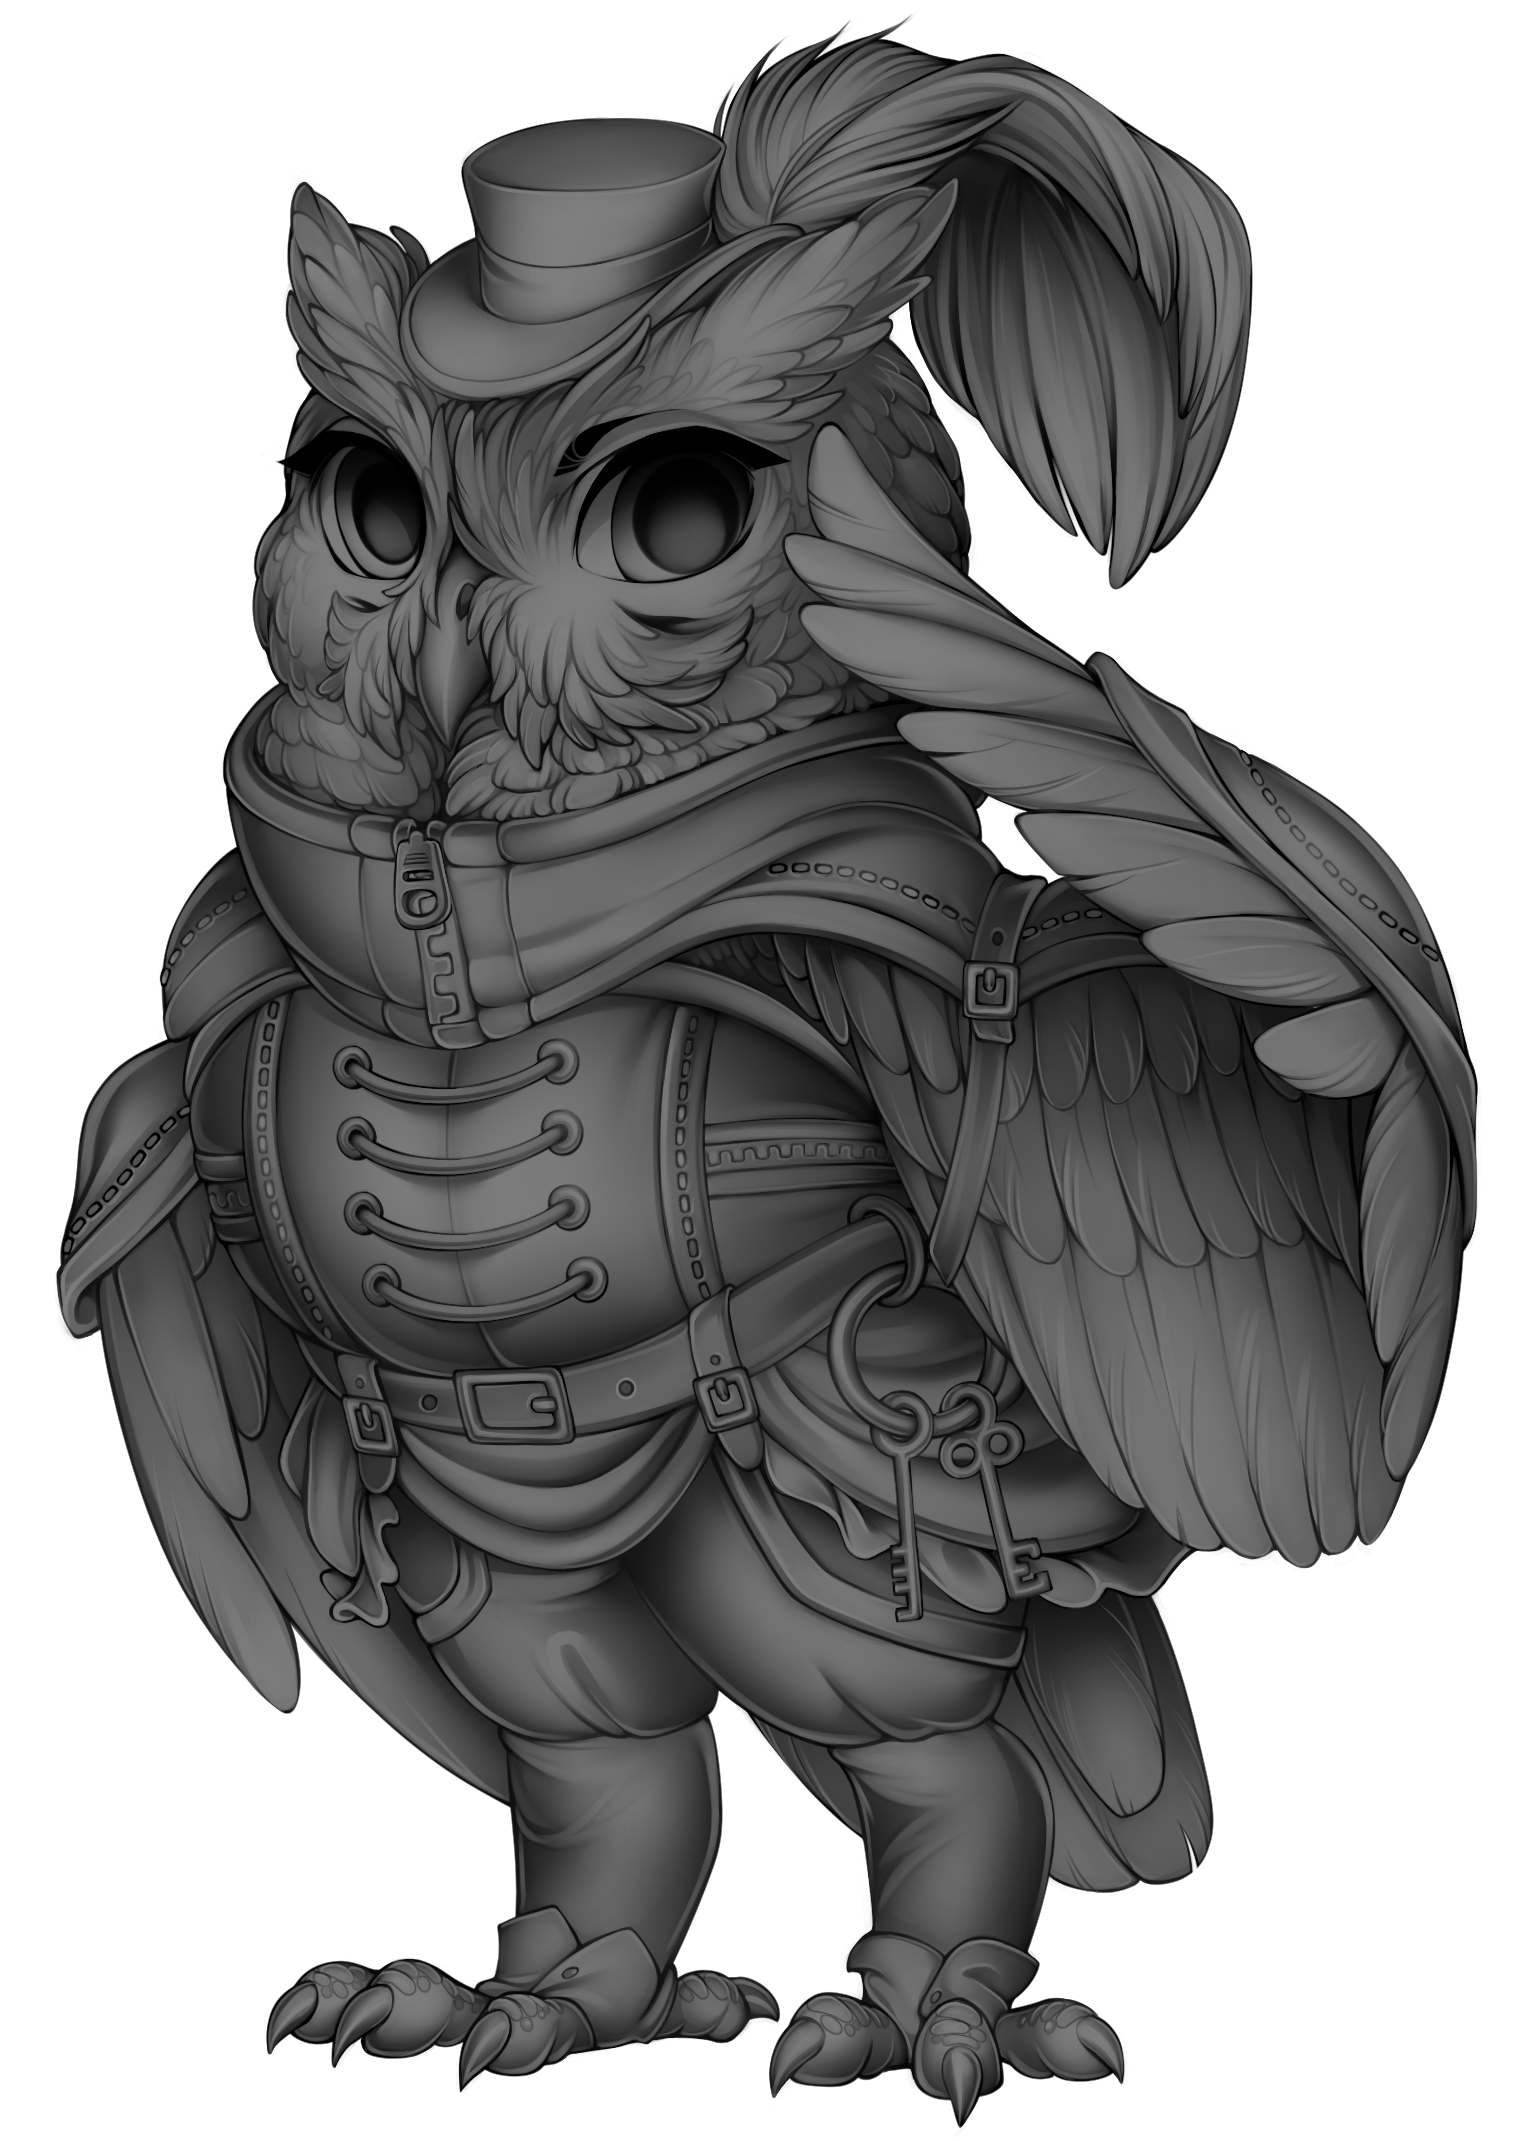 vector black and white Furvilla grayscale owl base. Valkyrie drawing steampunk